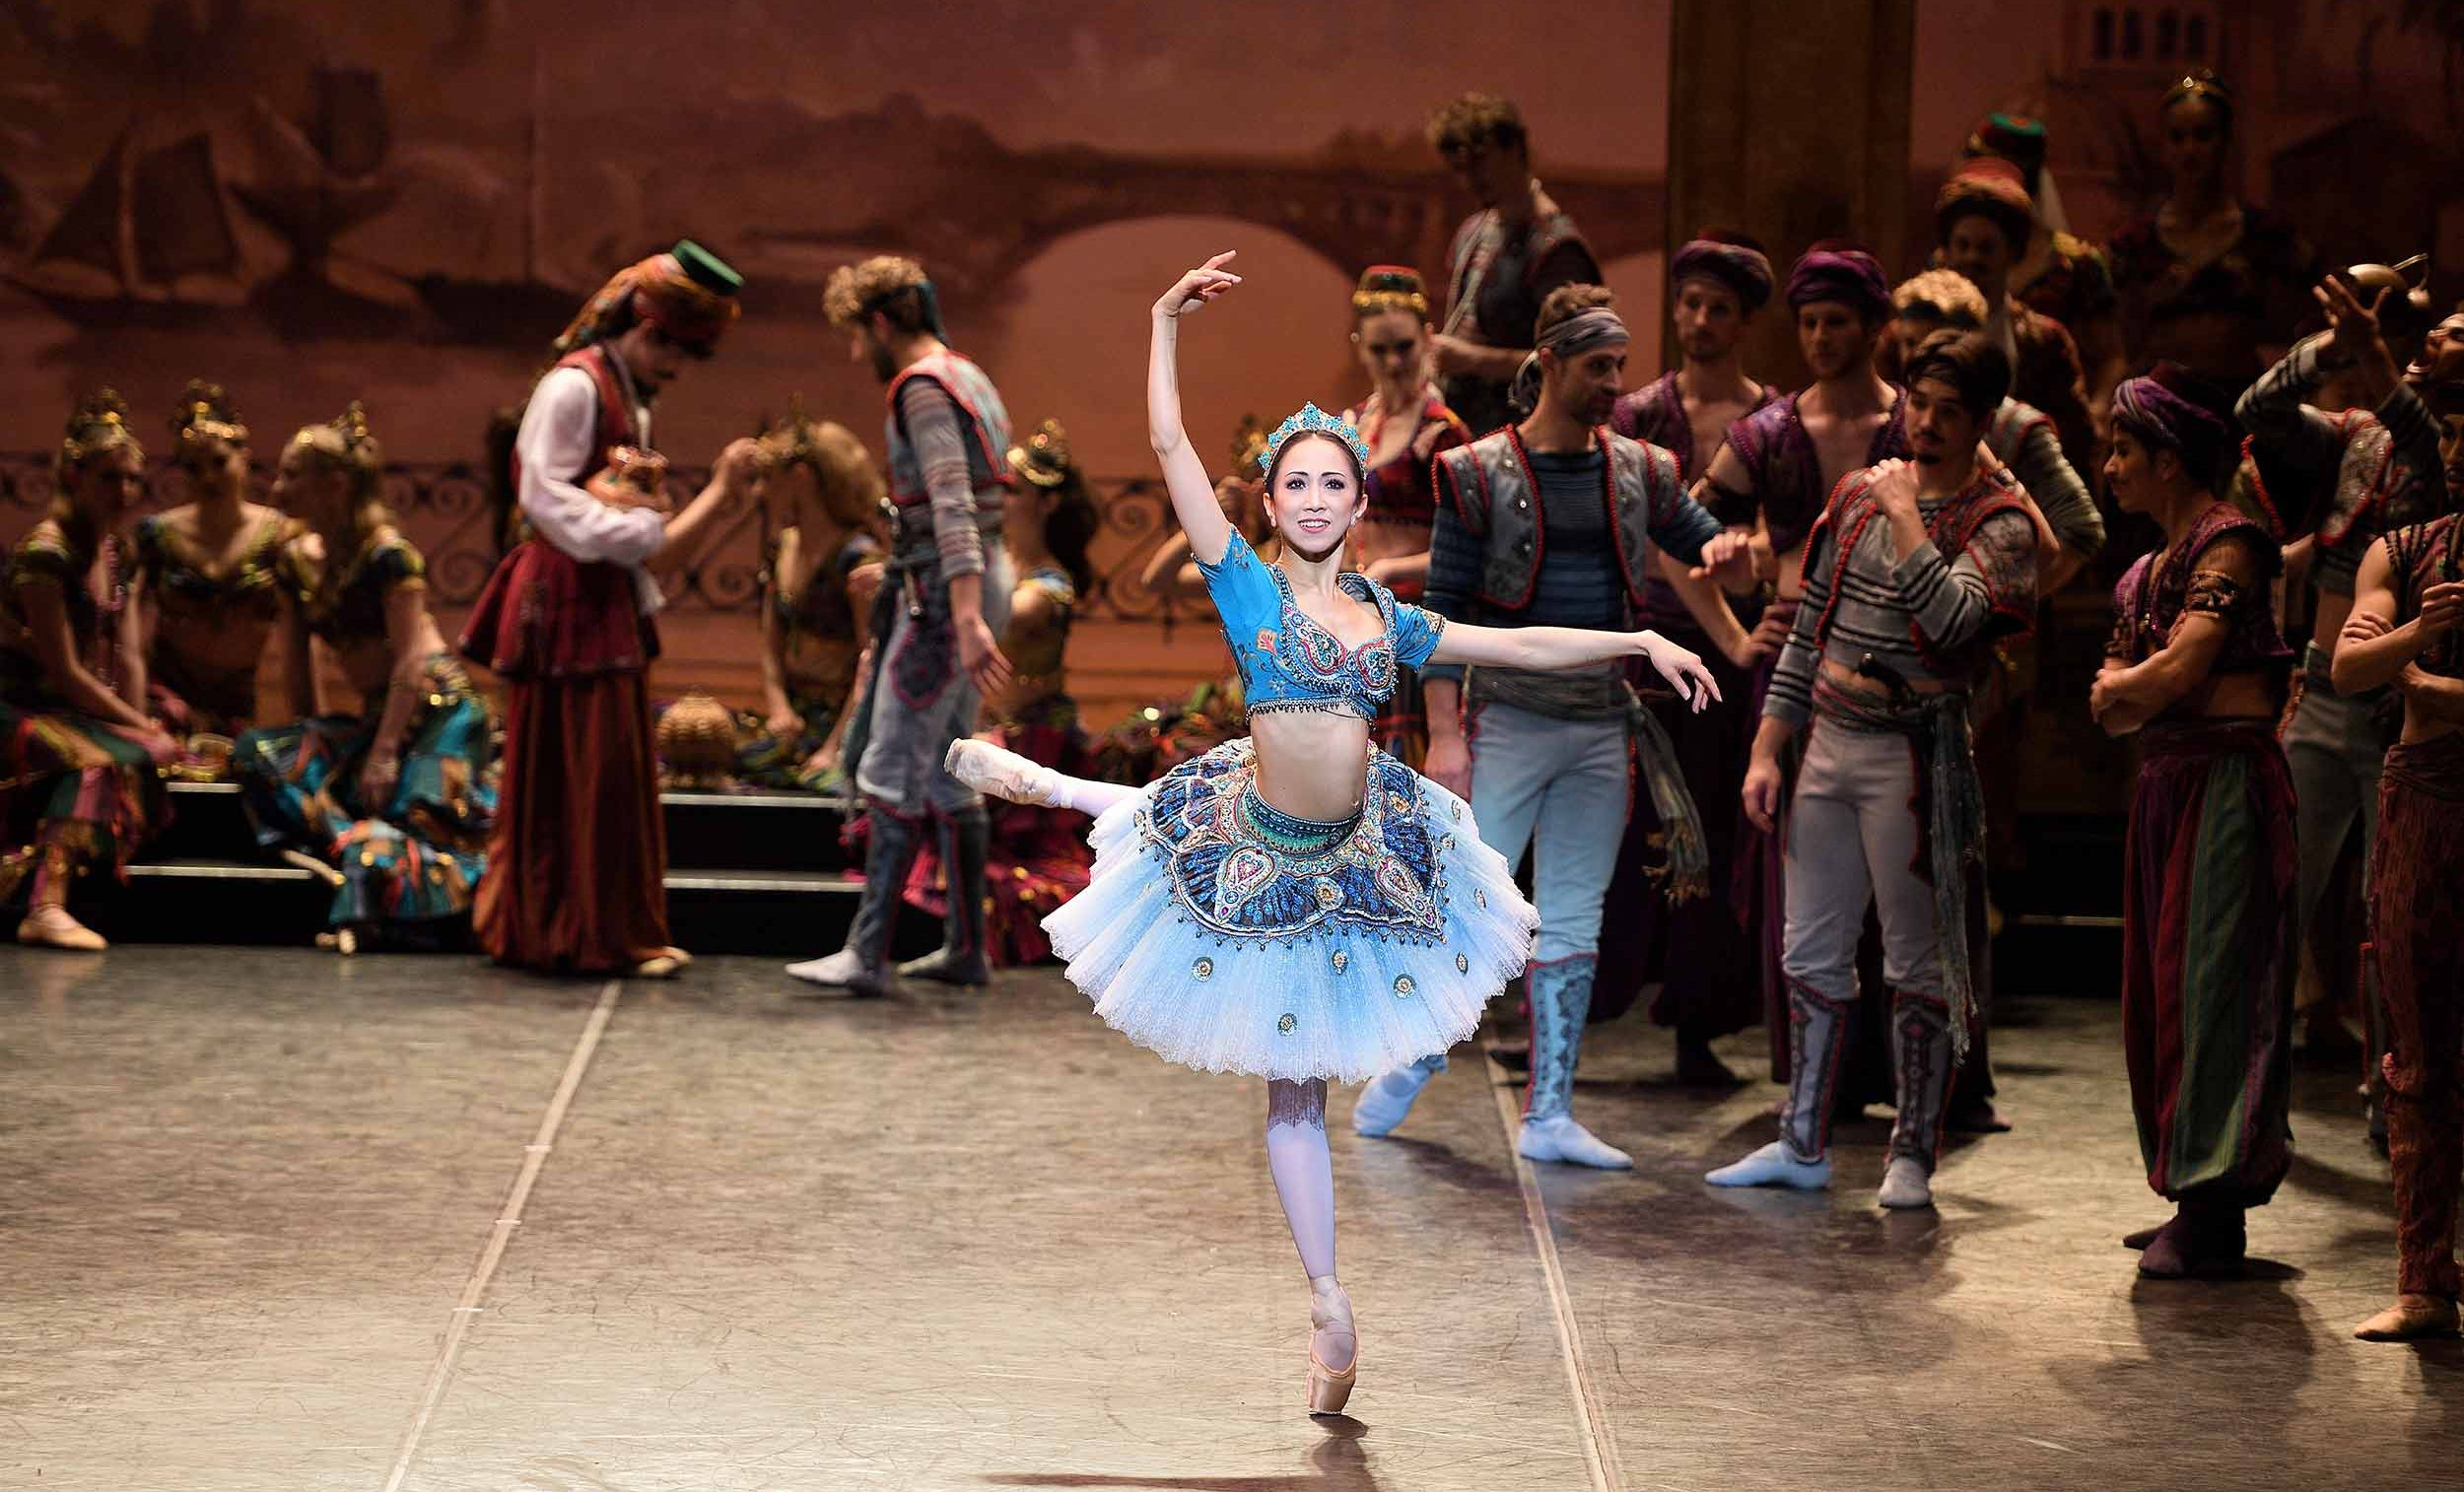 Erina-Takahashi-as-Medora-in-Le-Corsaire-(c)-Laurent-Liotardo